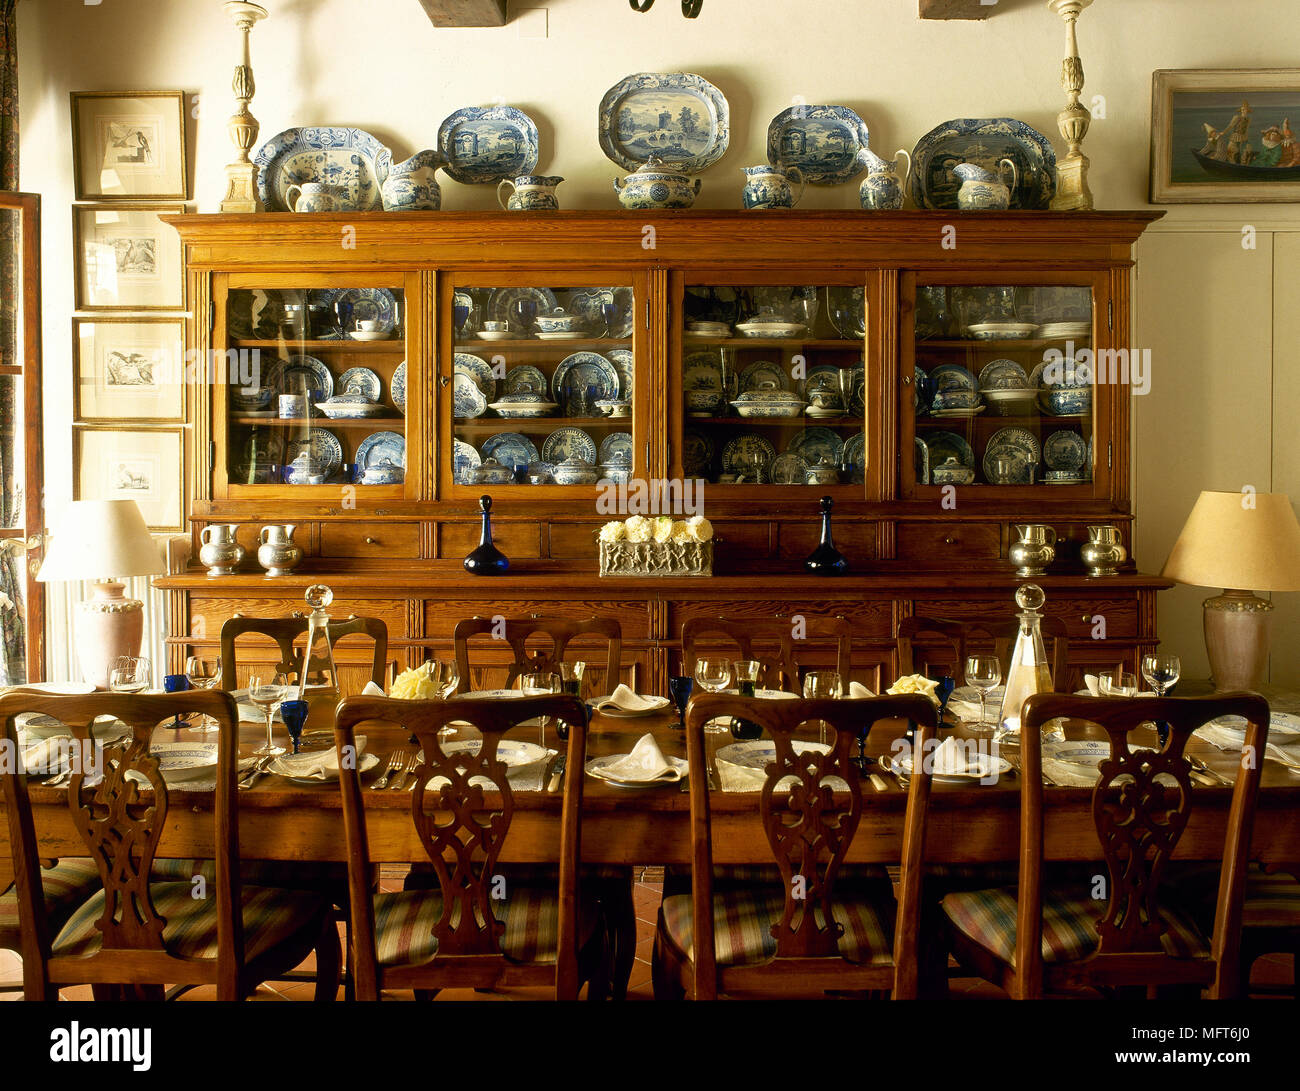 Traditional Dining Room Suite With Table, Chairs, And An Antique Cabinet  Displaying A Collection Of China.